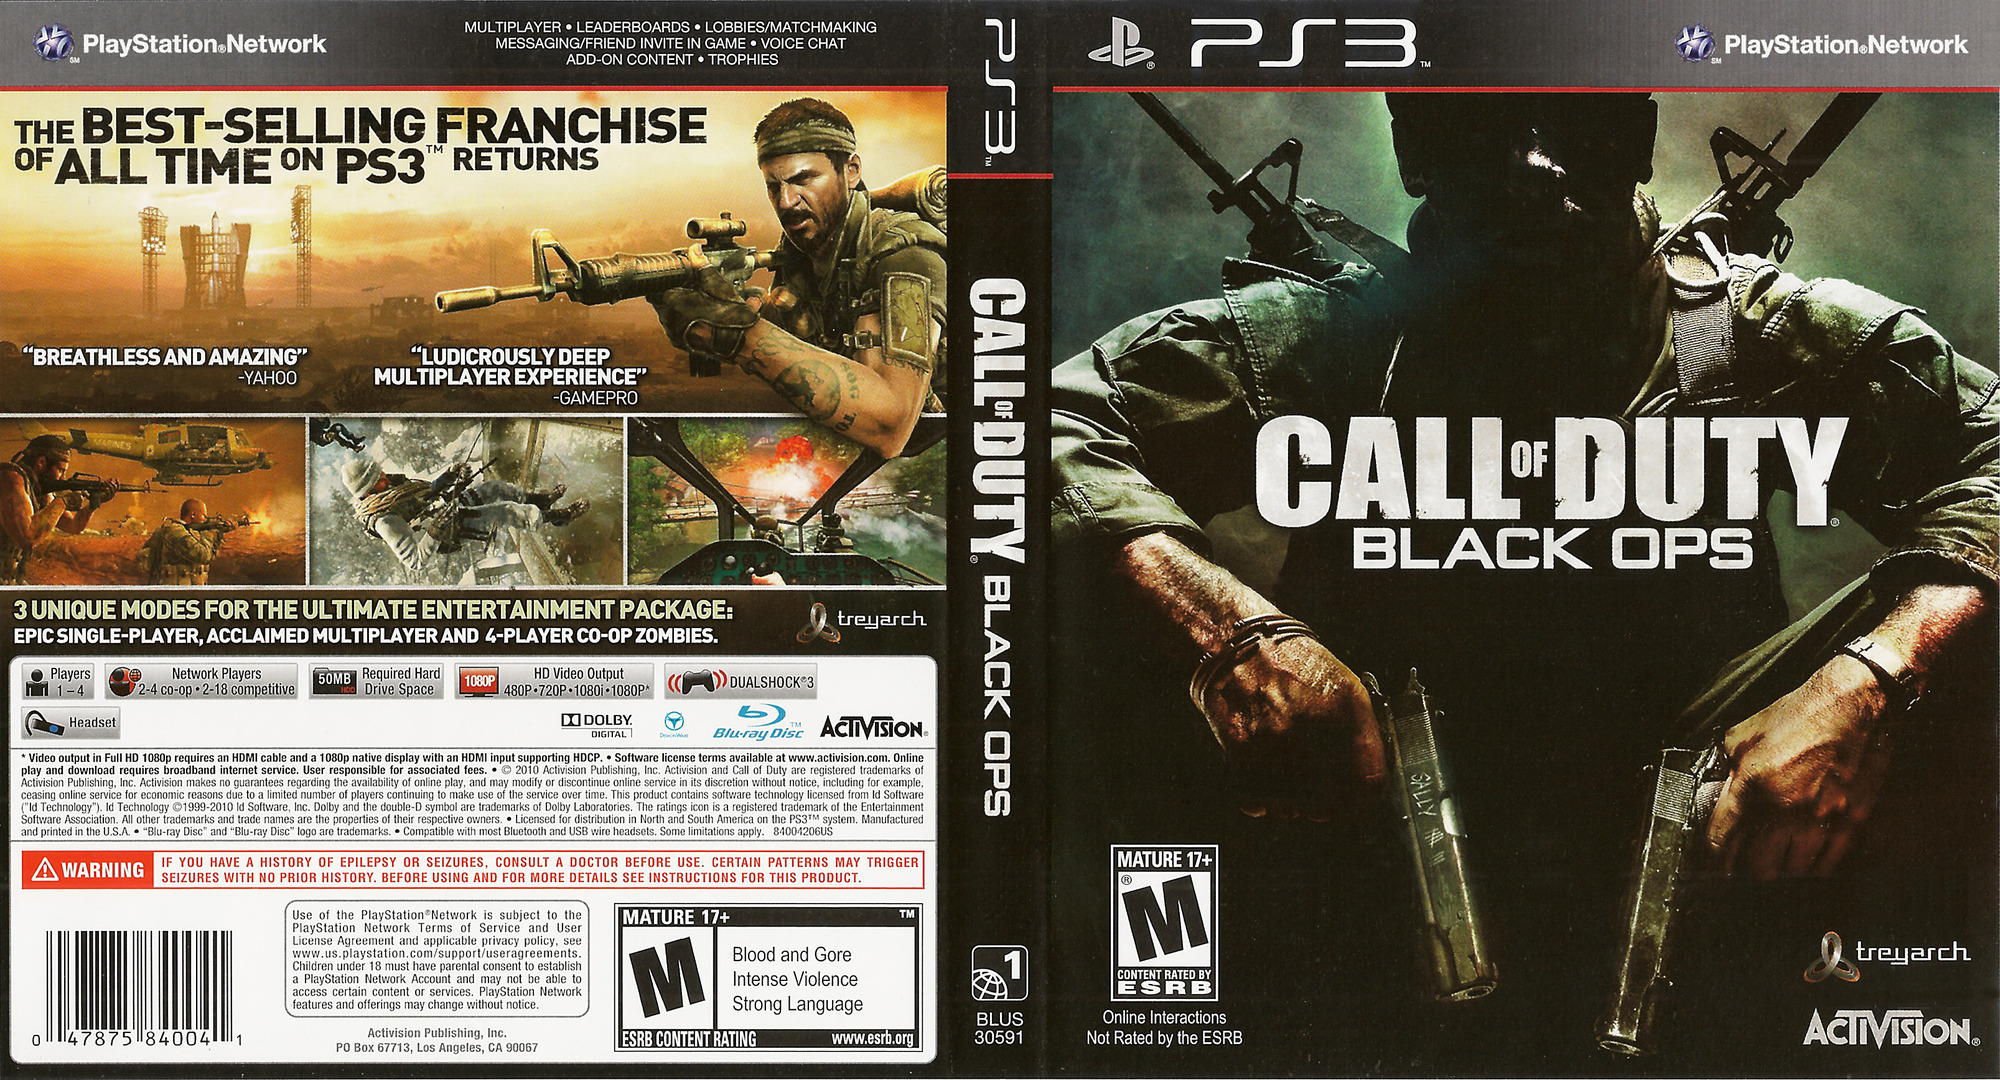 BLUS30591 - Call of Duty: Black Ops